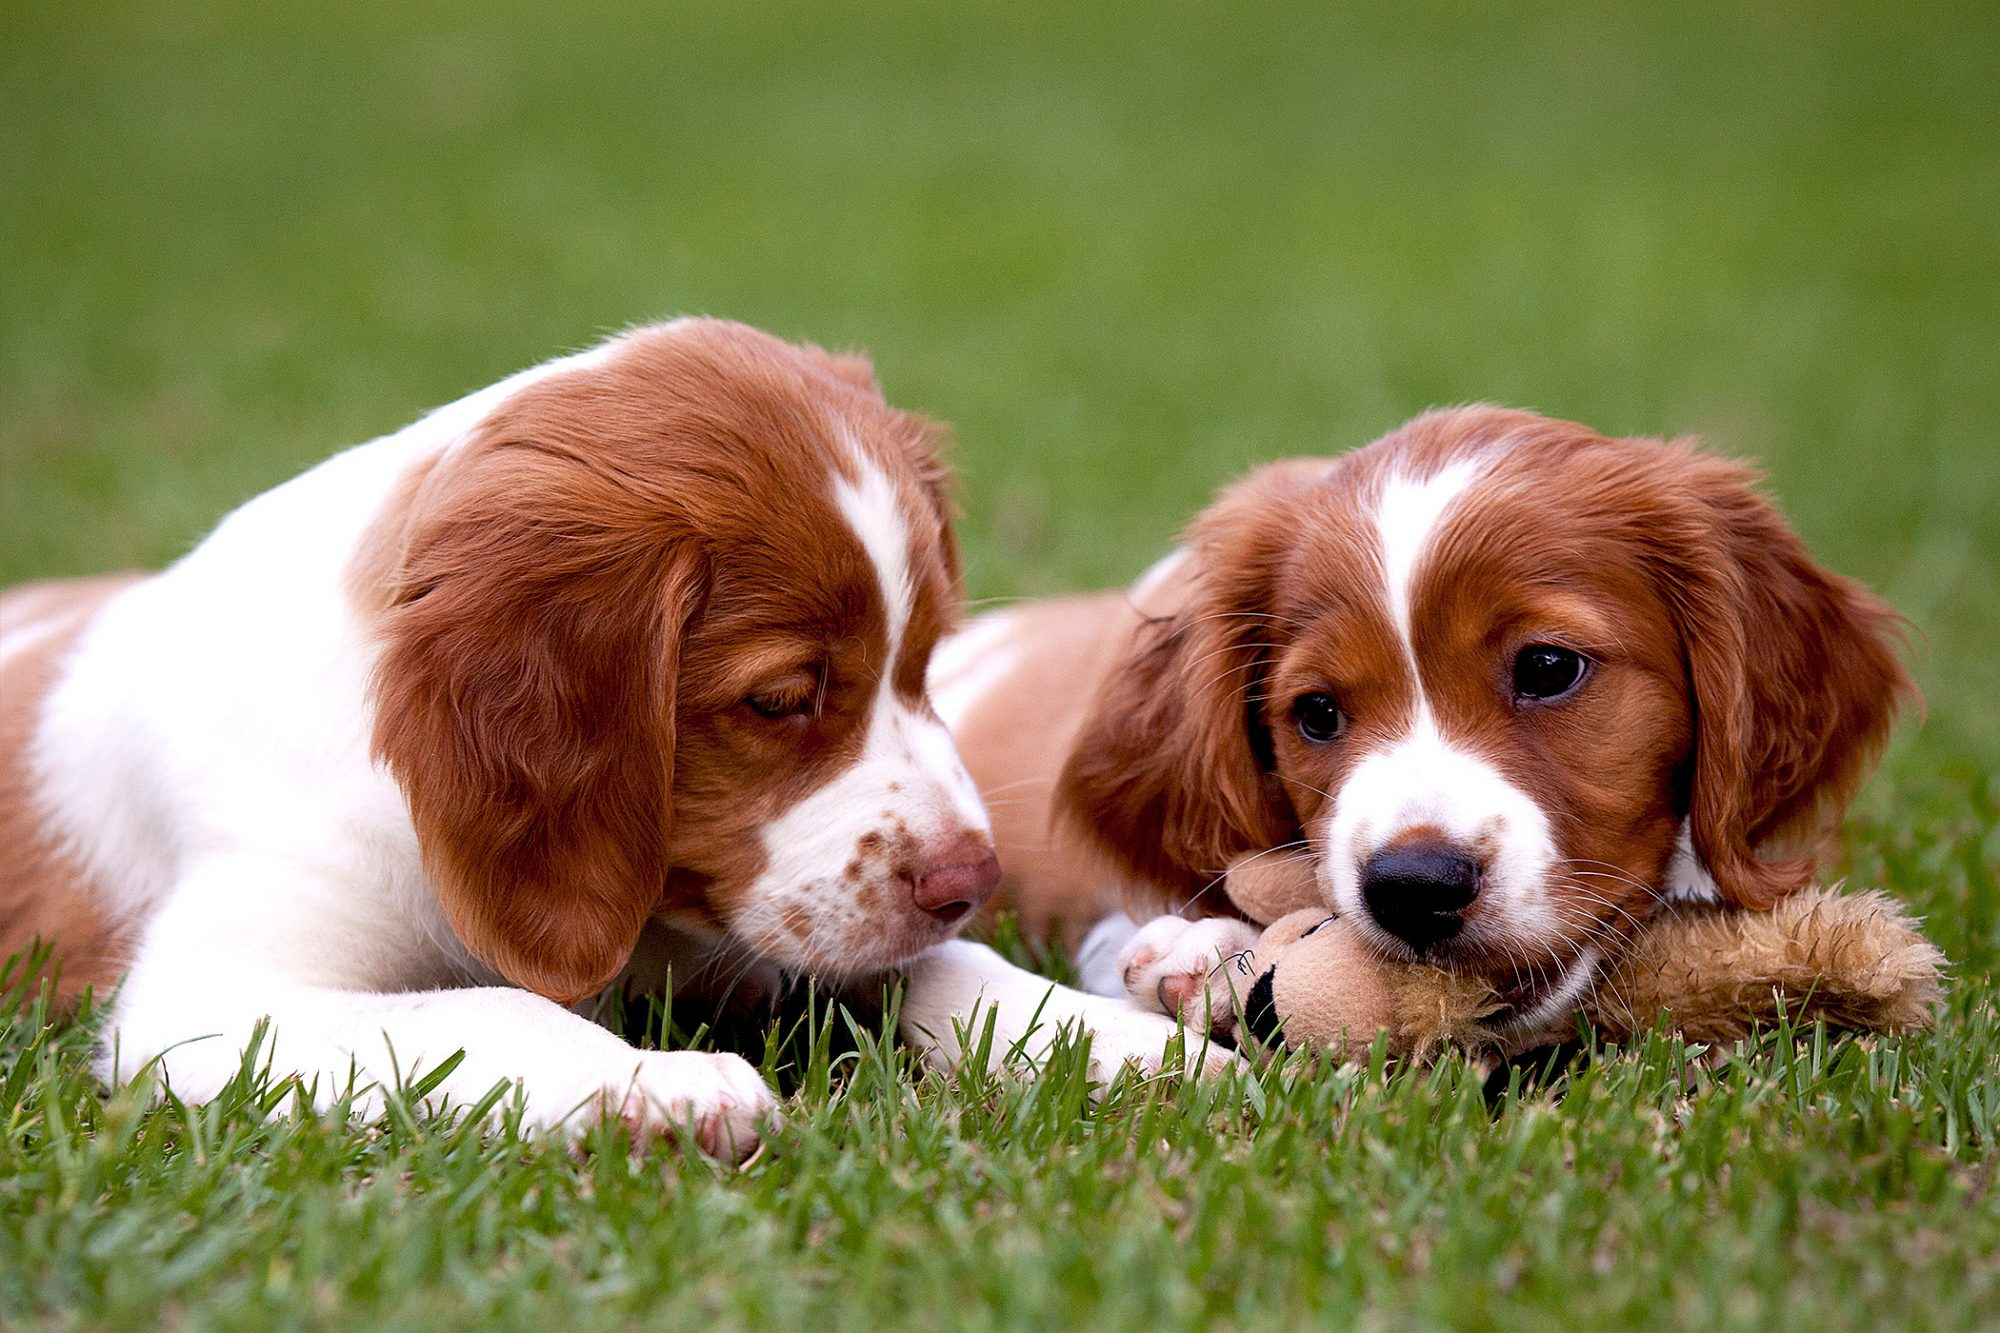 Two brittany spaniel puppies play in grass with dog toy